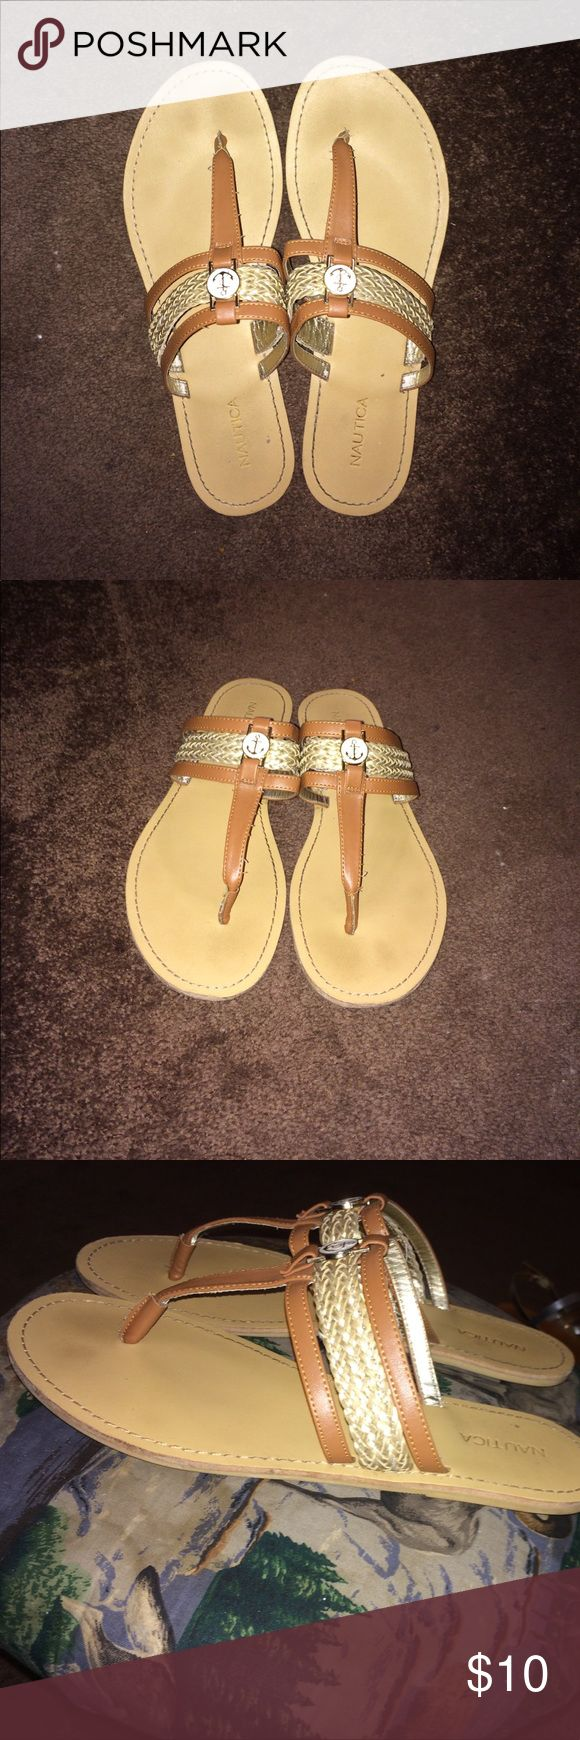 Tan and Gold Sandals Tan and Gold three strap sandals with an anchor in the middle Shoes Sandals